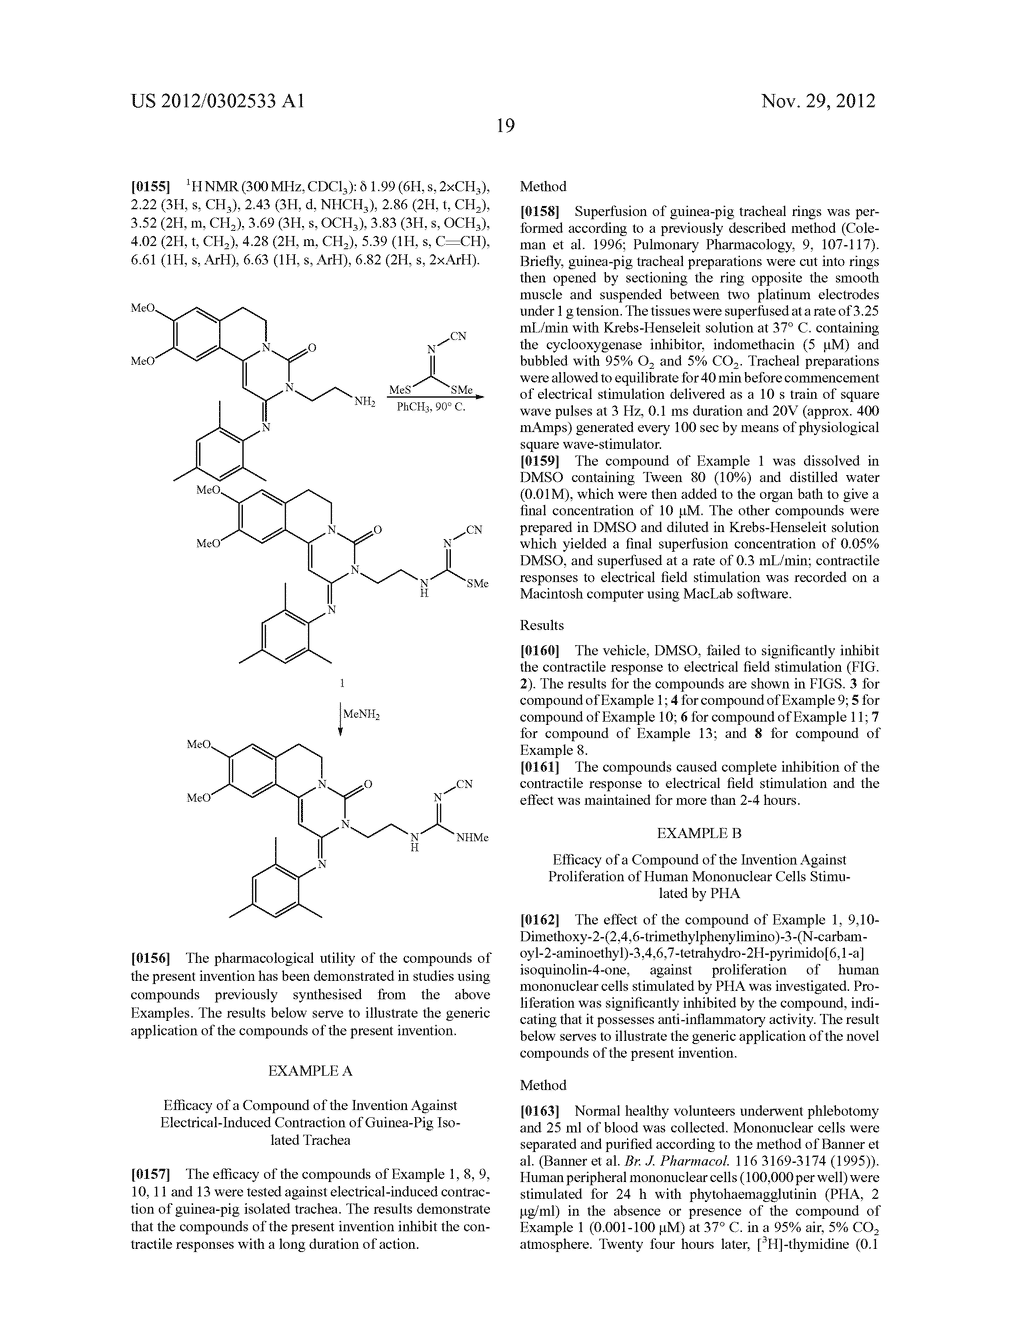 DERIVATIVES OF PYRIMIDO [6,1-A] ISOQUINOLIN-4-ONE - diagram, schematic, and image 25